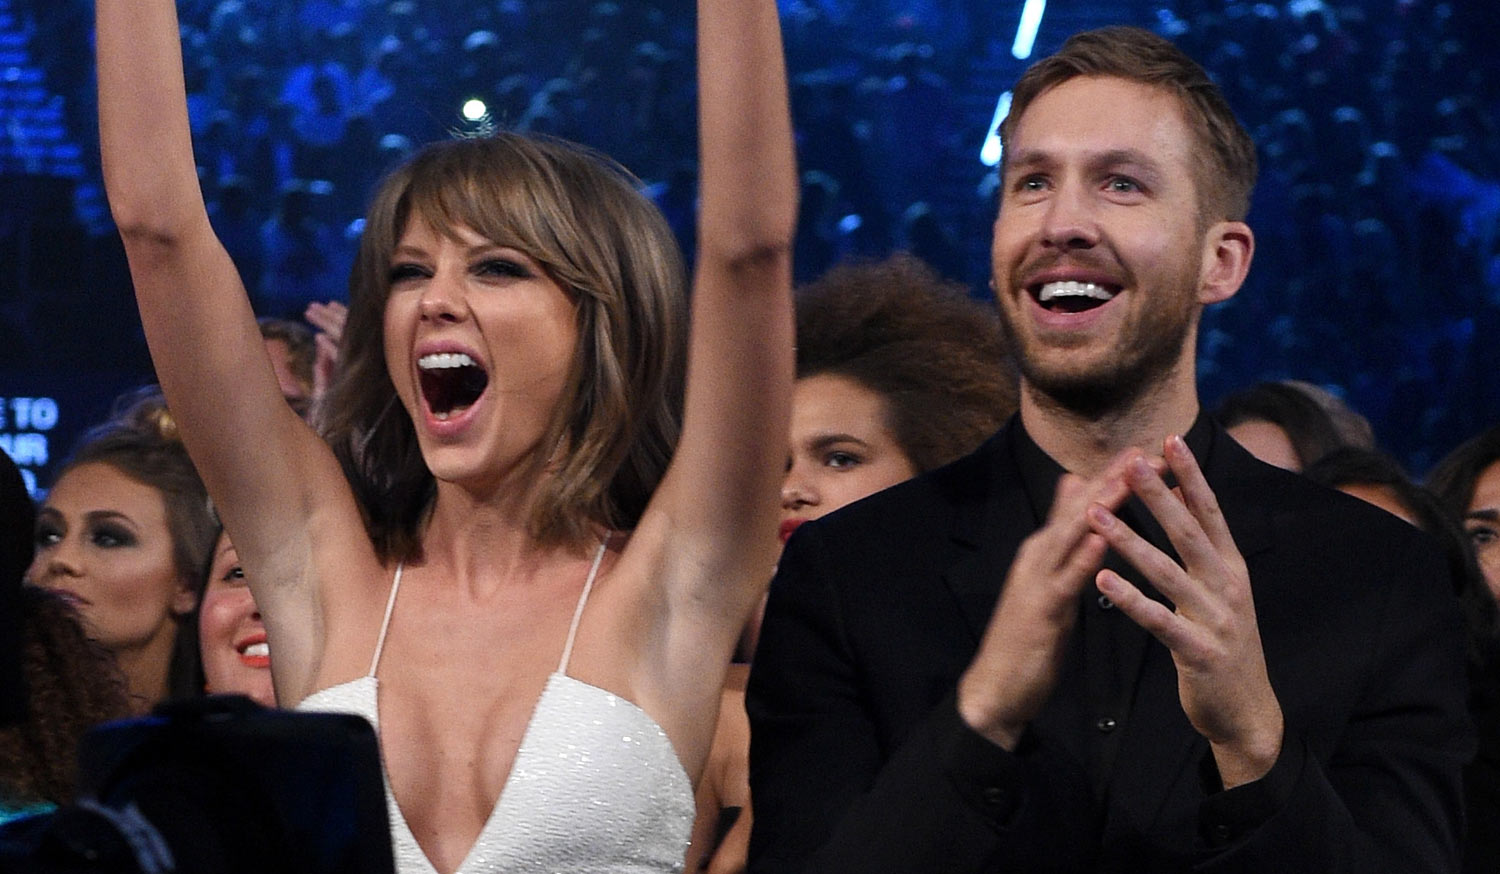 taylor-swift-calvin-harris-highest-paid-celebrity-couple-social